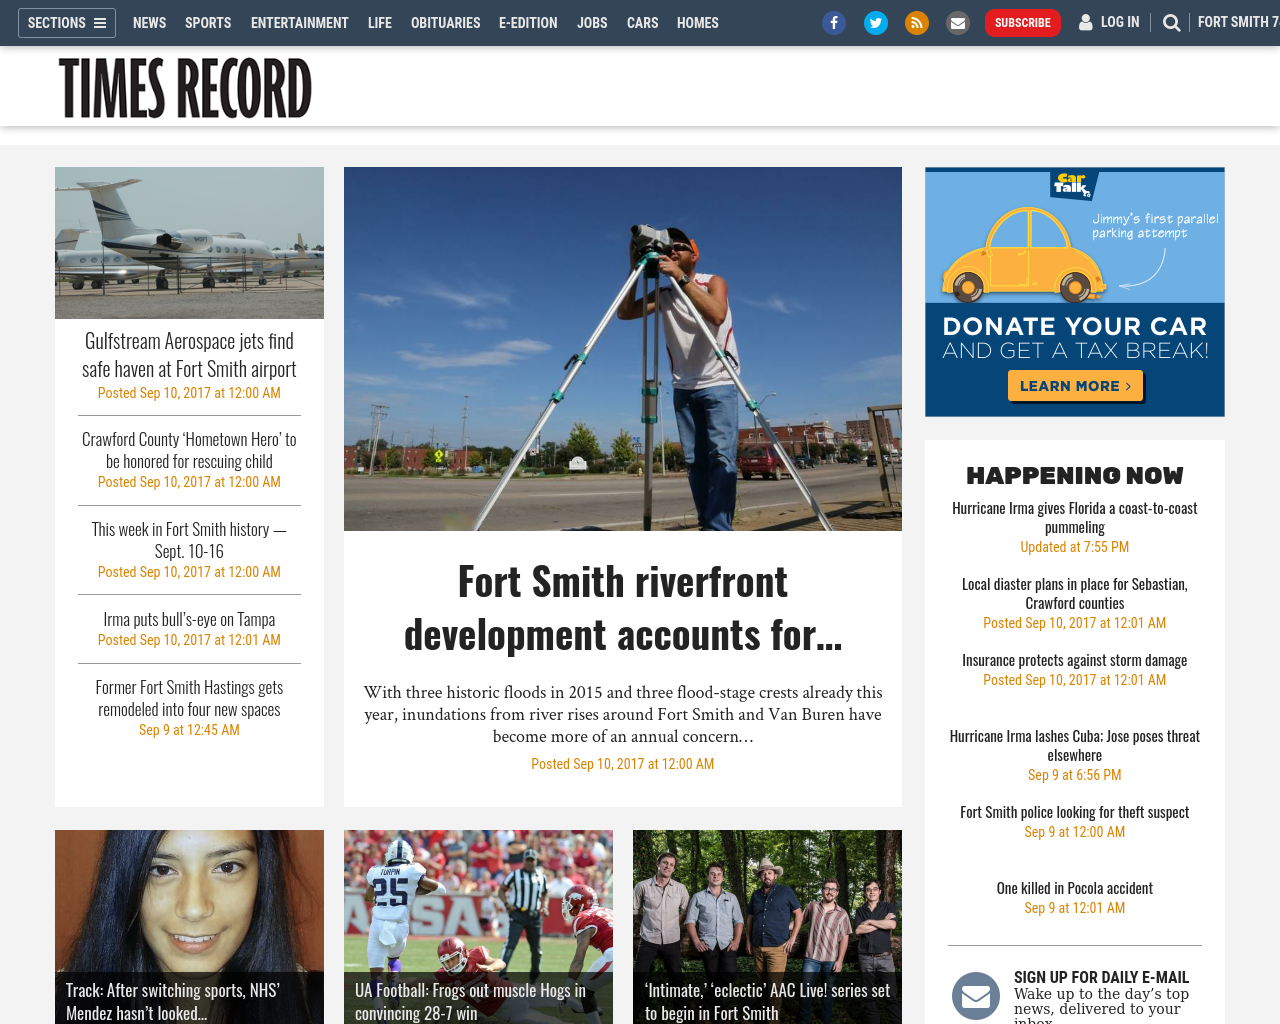 Times-Record-Online-Edition-Advertising-Reviews-Pricing